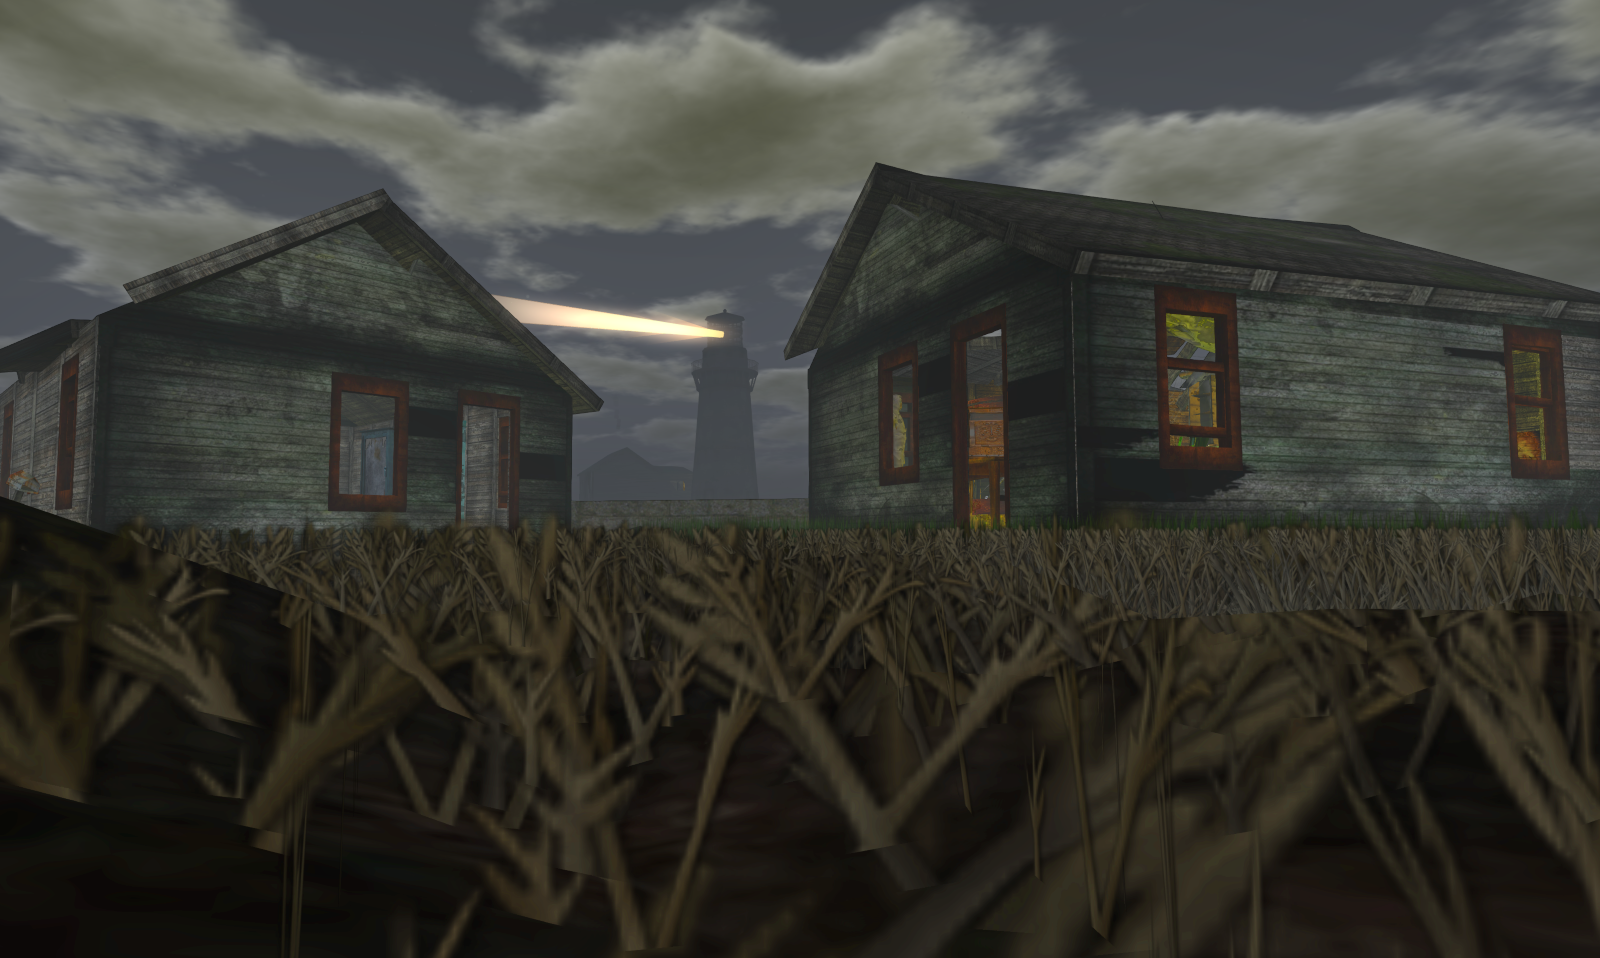 Two houses in Innsmouth